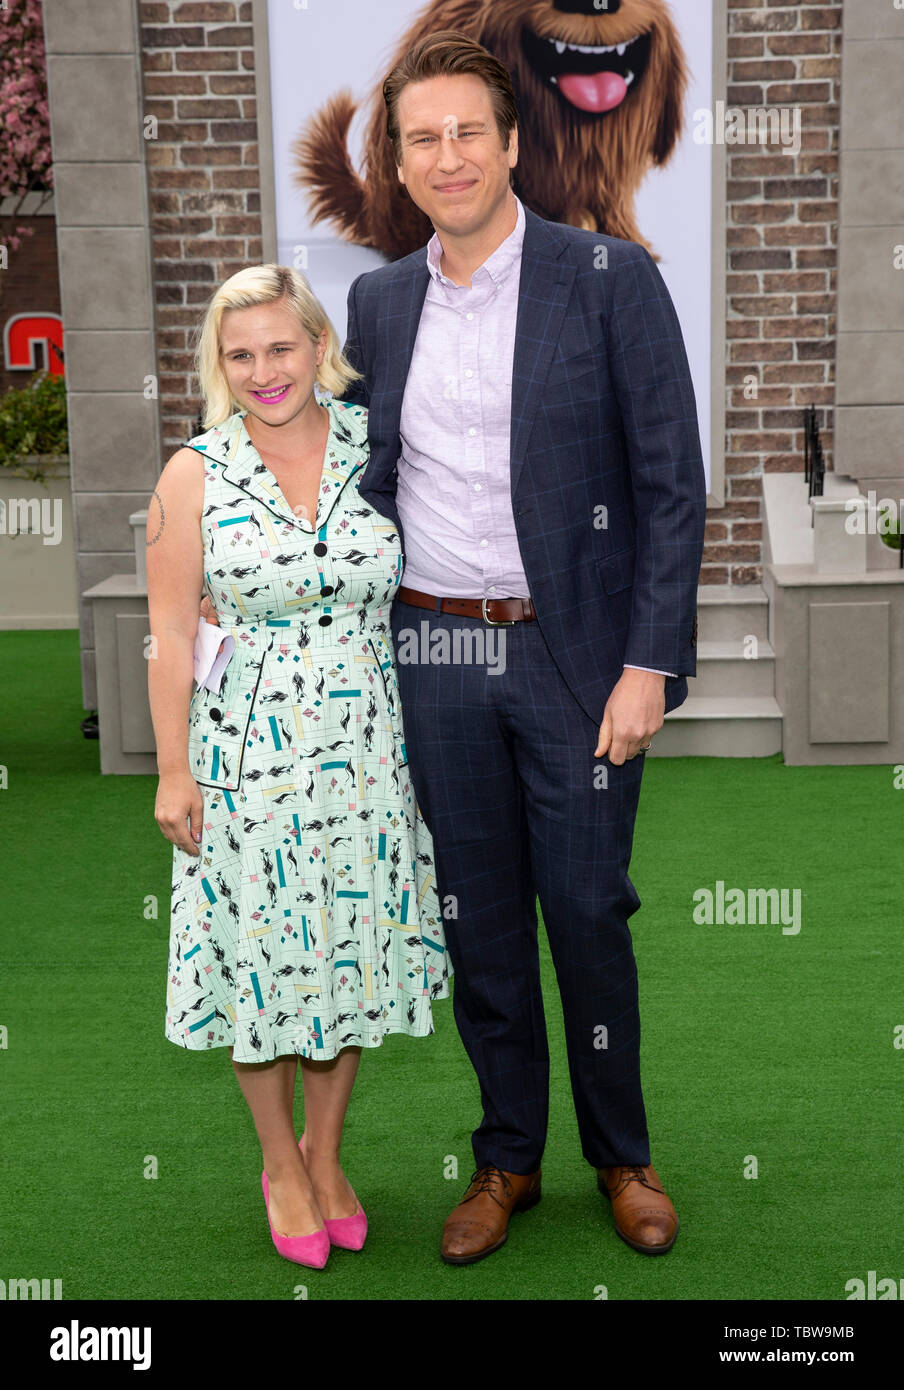 Los Angeles, CA - June 02, 2019: Valerie Chaney and Pete Holmes attend the Premiere Of Universal Pictures' 'The Secret Life Of Pets 2' held at Regency - Stock Image